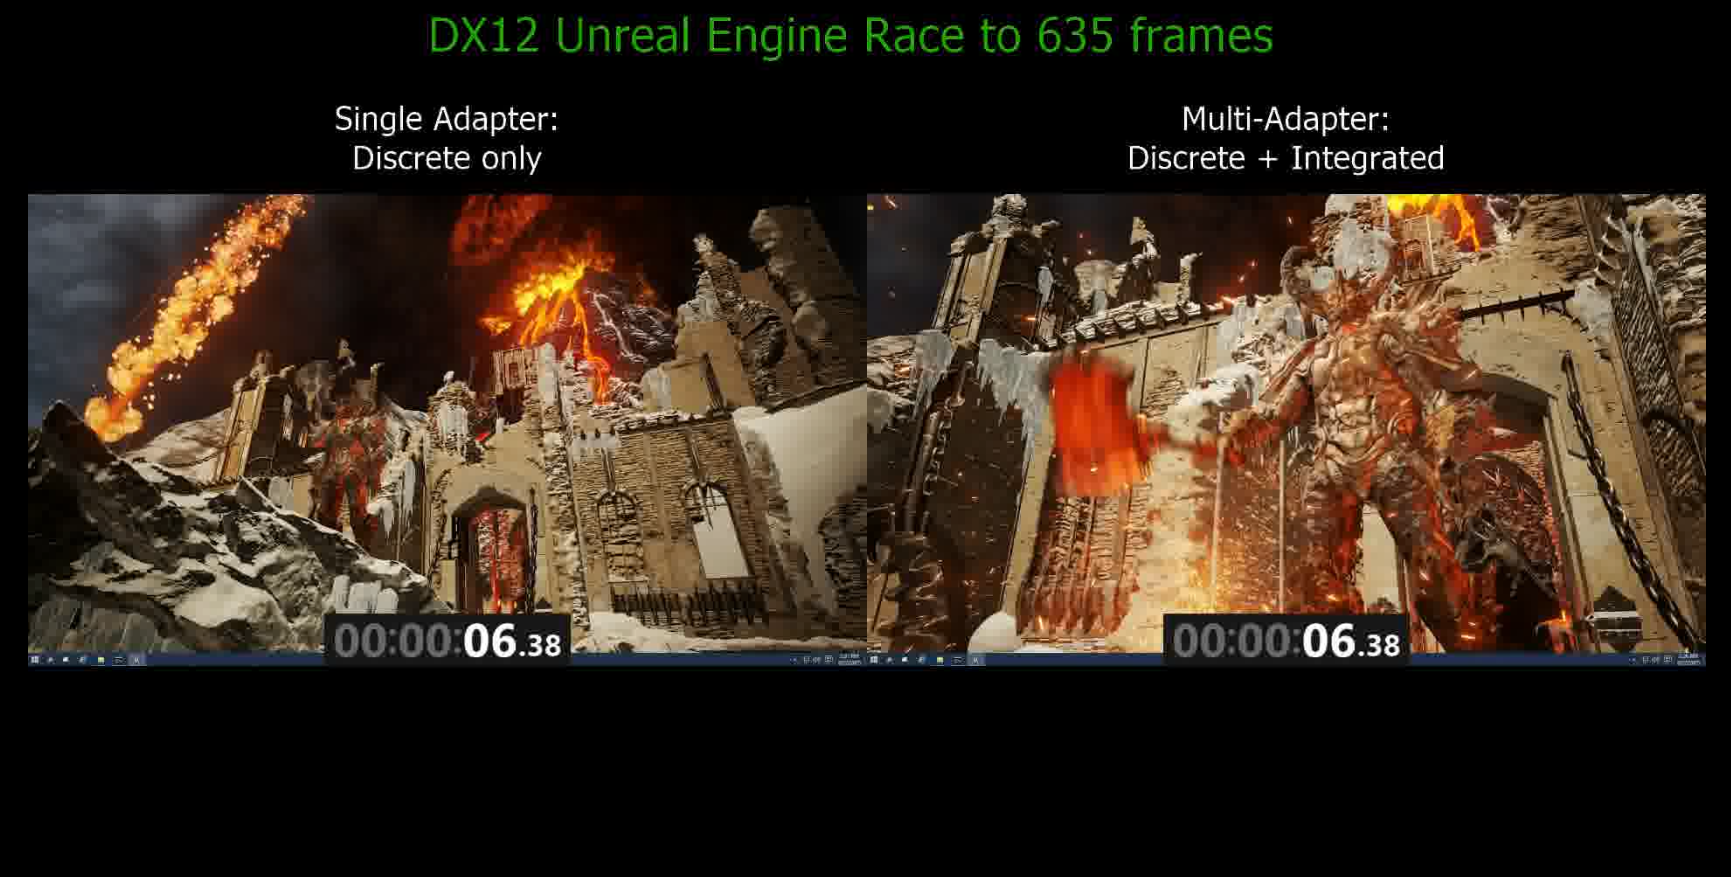 DirectX 12 Multiadapter: Lighting up dormant silicon and